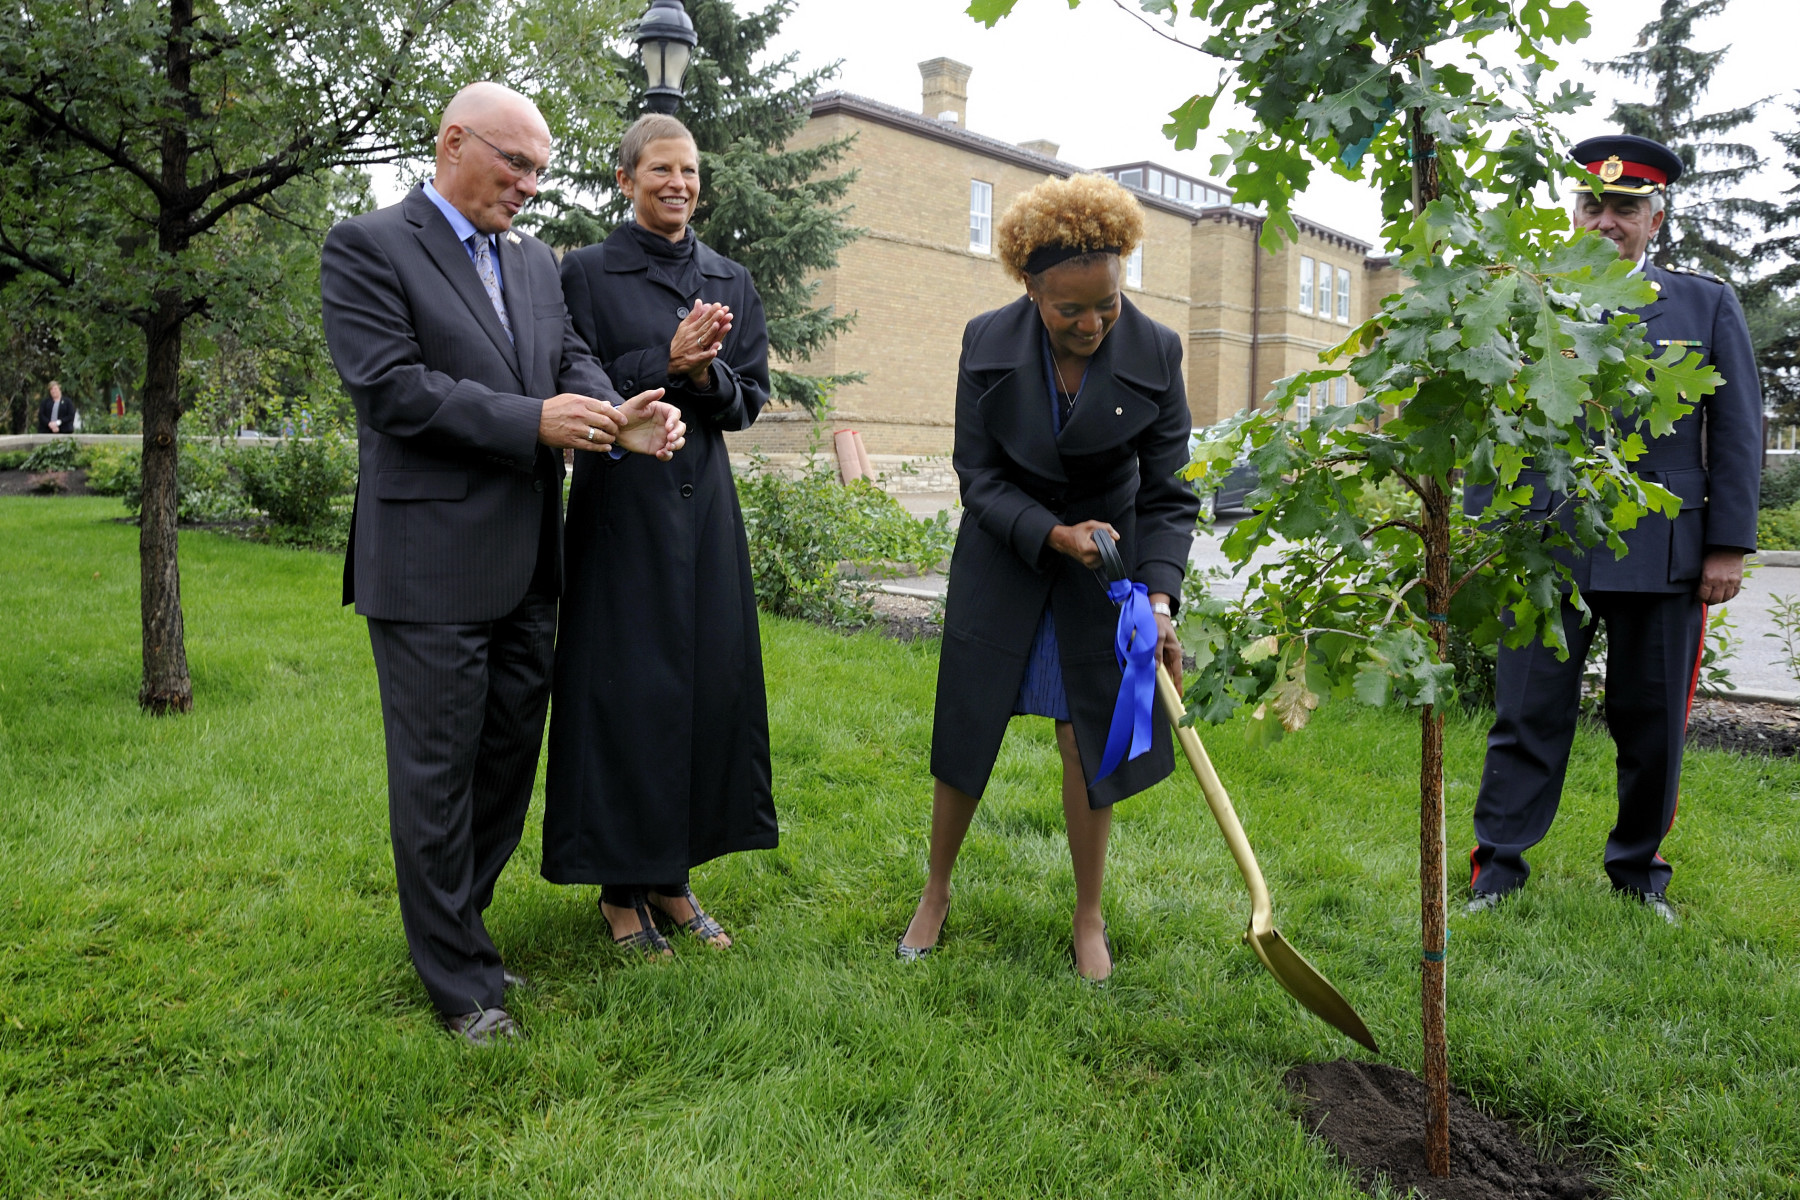 In honour of her visit to the province, the Governor General planted a tree in the Edwardian Gardens at Government House in the presence of Their Honours, the Honourable Dr. Gordon L. Barnhart, Lieutenant Governor of Saskatchewan and his wife Mrs. Naomi Barnhart.